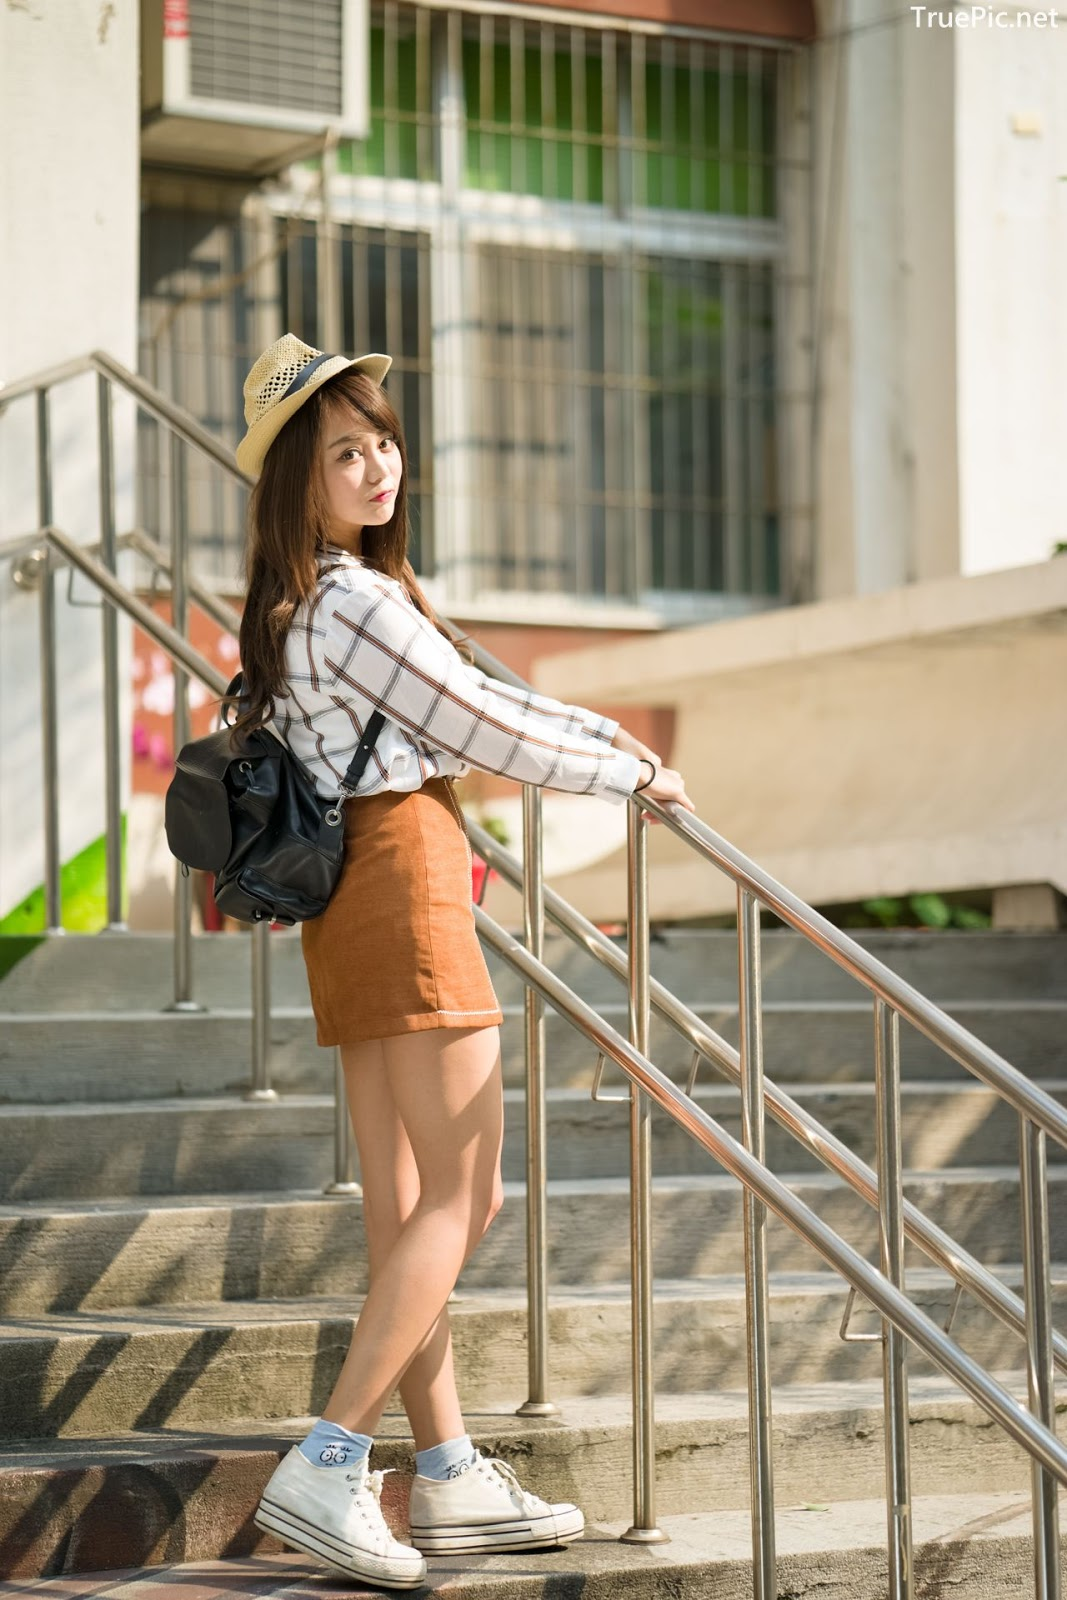 Image-Taiwan-Social-Celebrity-Sun-Hui-Tong-孫卉彤-A-Day-as-Student-Girl-TruePic.net- Picture-3